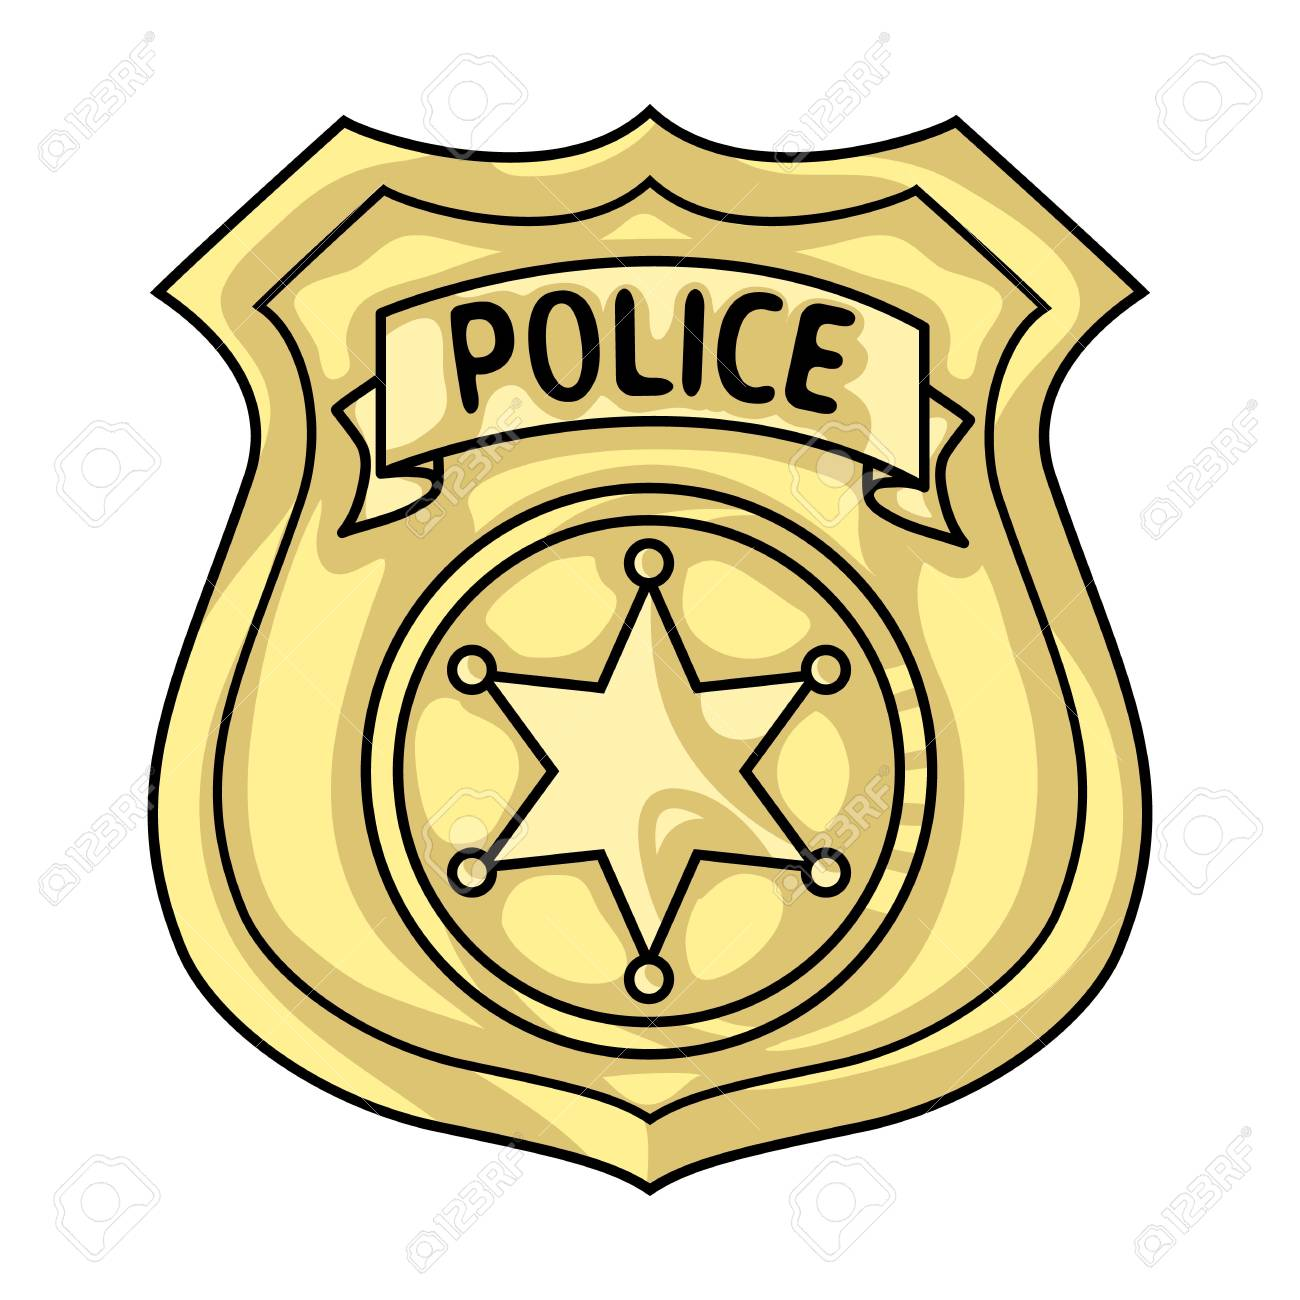 police officer badge icon in cartoon style isolated on white rh 123rf com police badge vector free police badge vector illustration